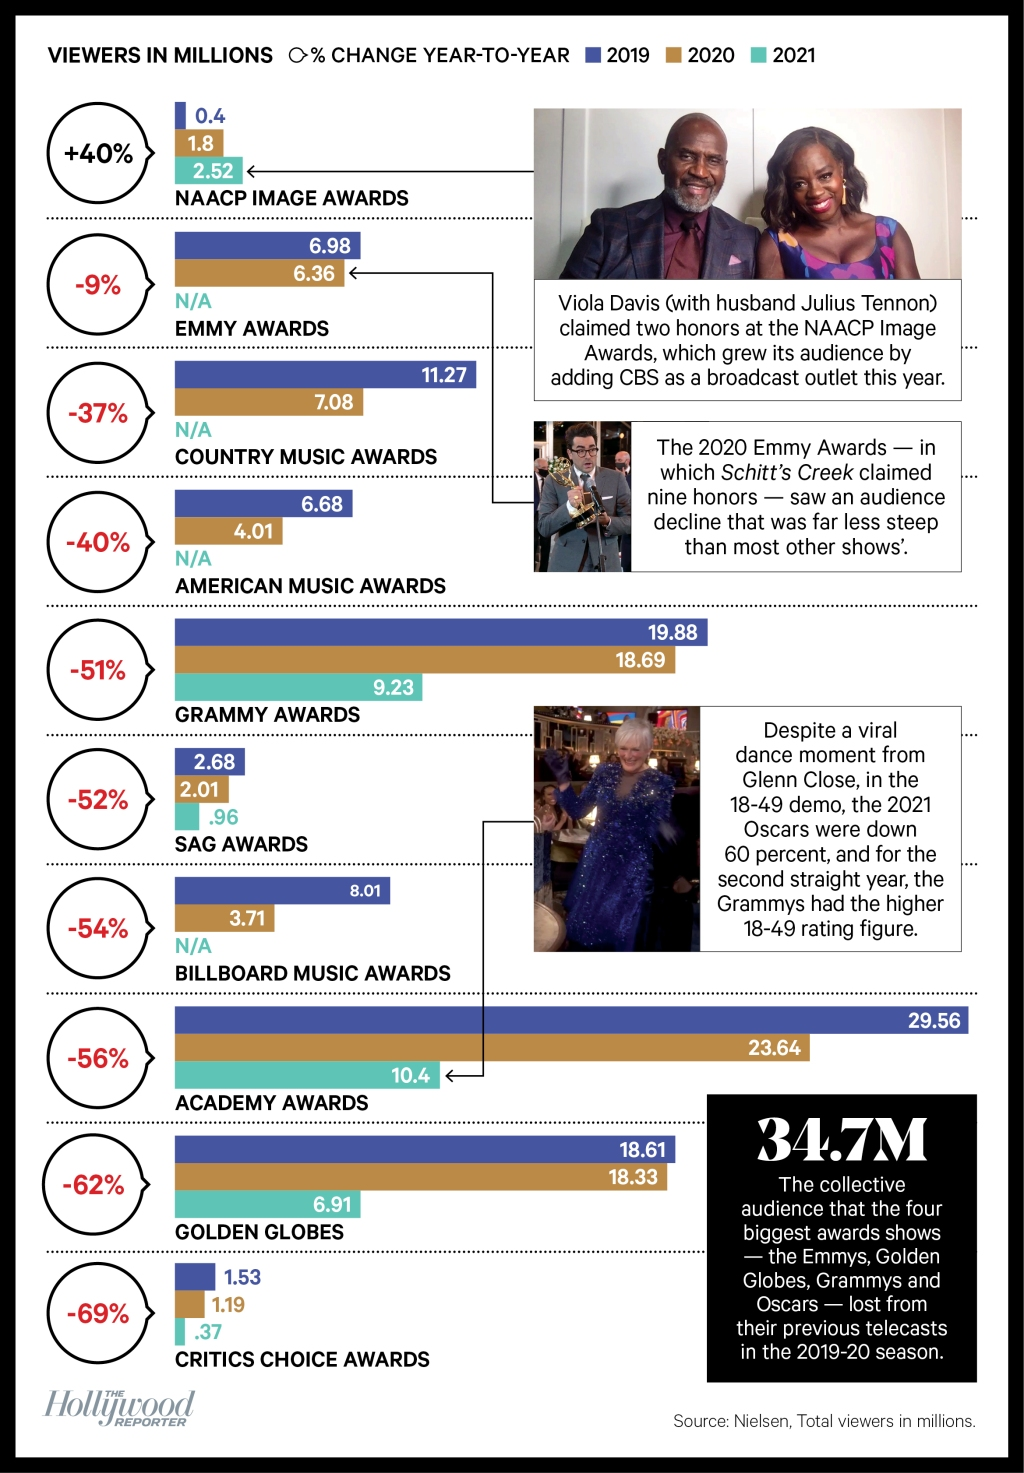 Chart showing change in viewership for major televised awards shows.